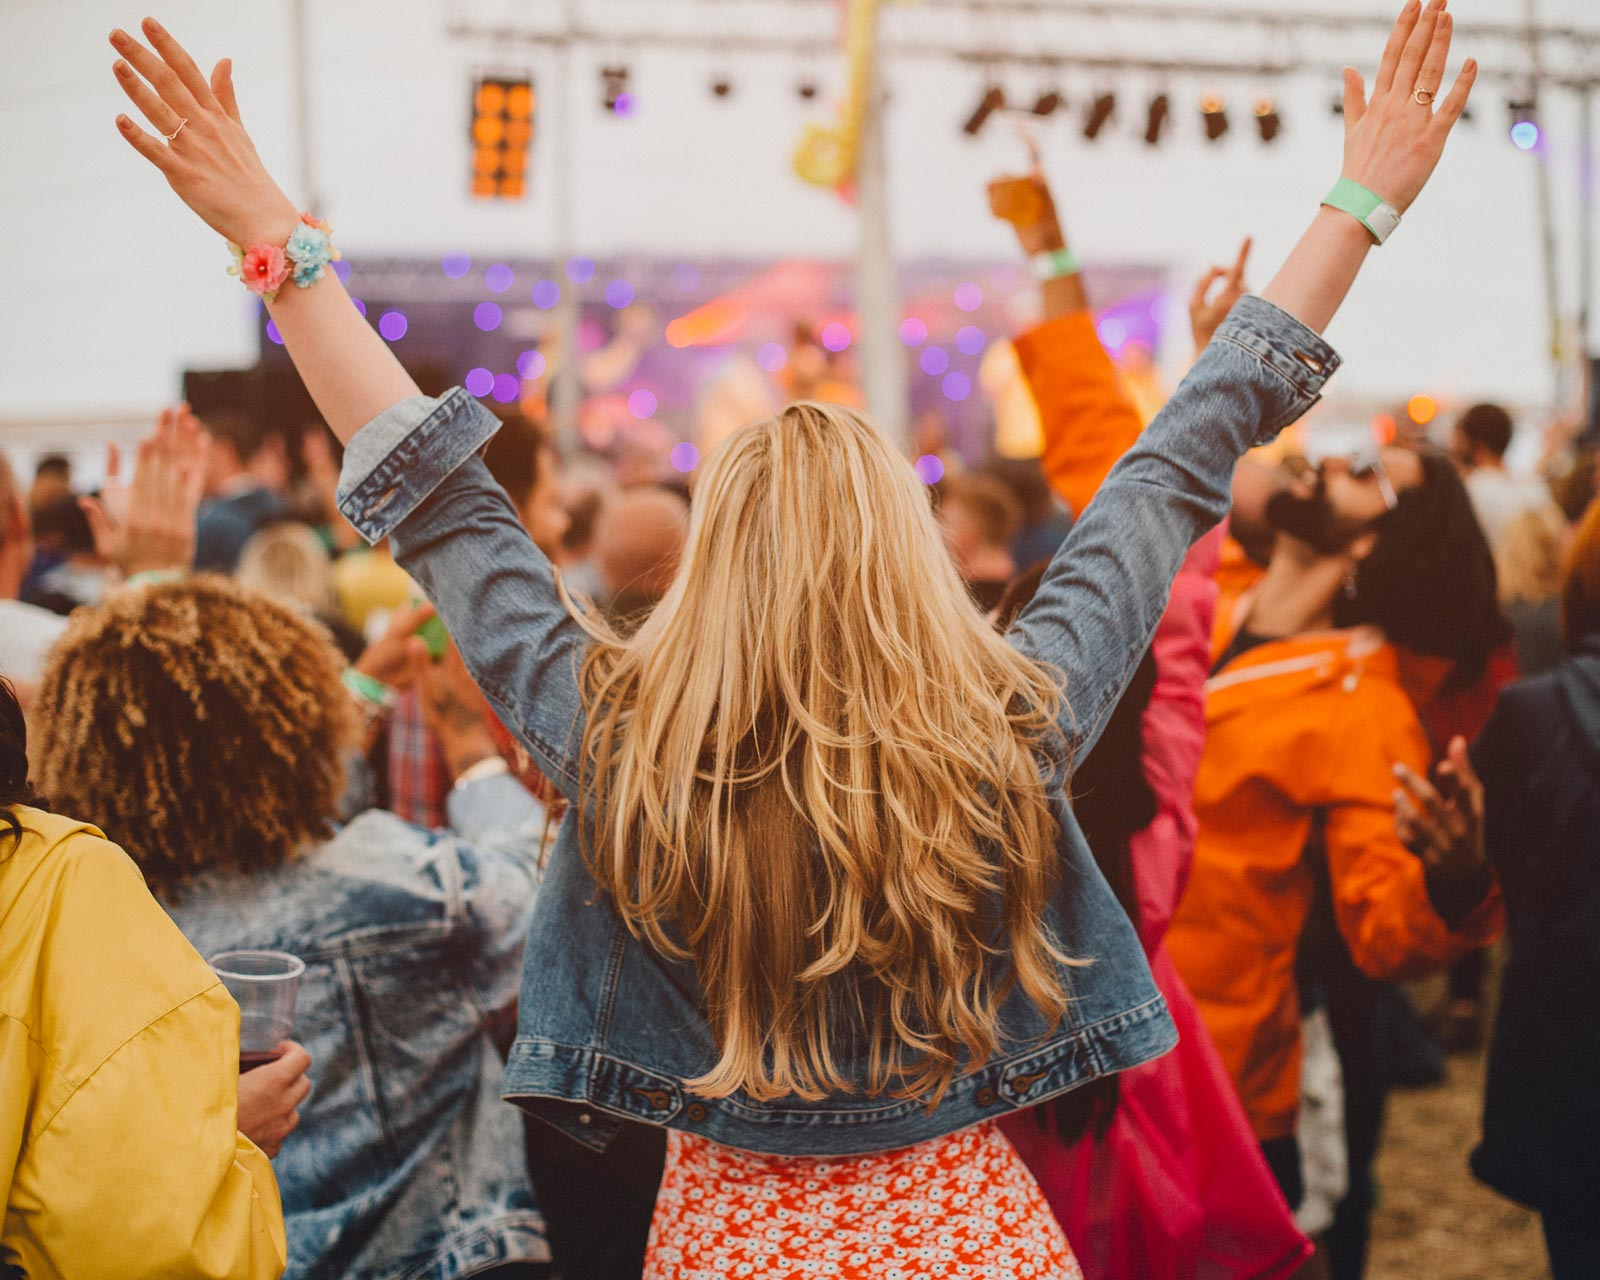 Why You Should Go to Loveland Festival 2019 in Amsterdam